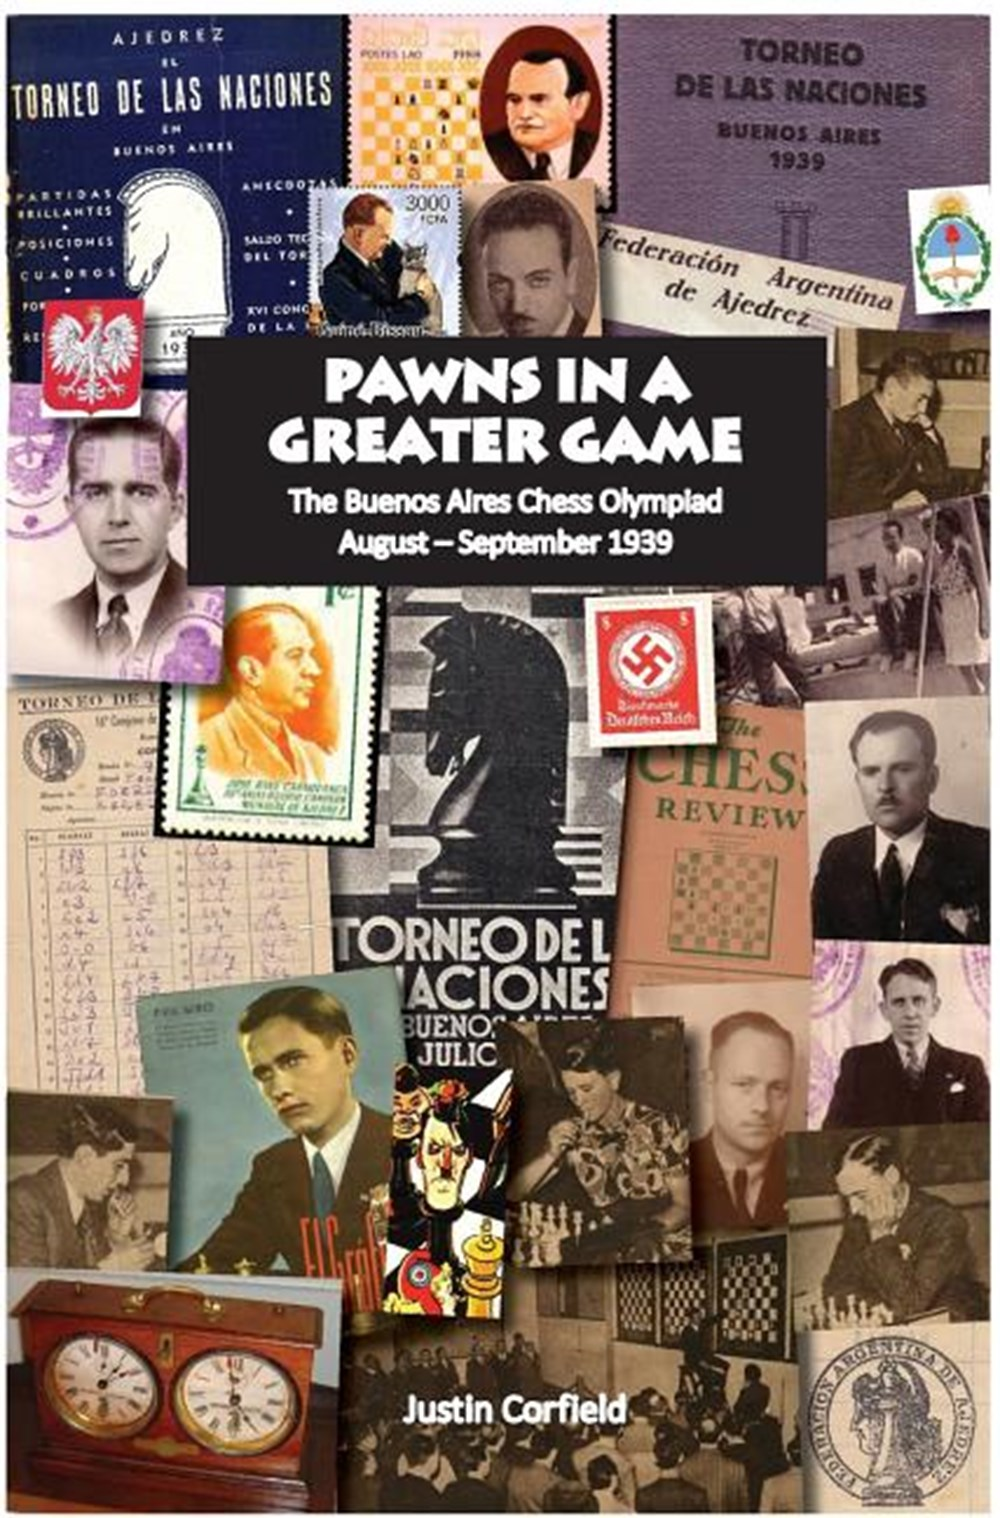 Pawns in a Greater Game The Buenos Aires Chess Olympiad, August - September 1939